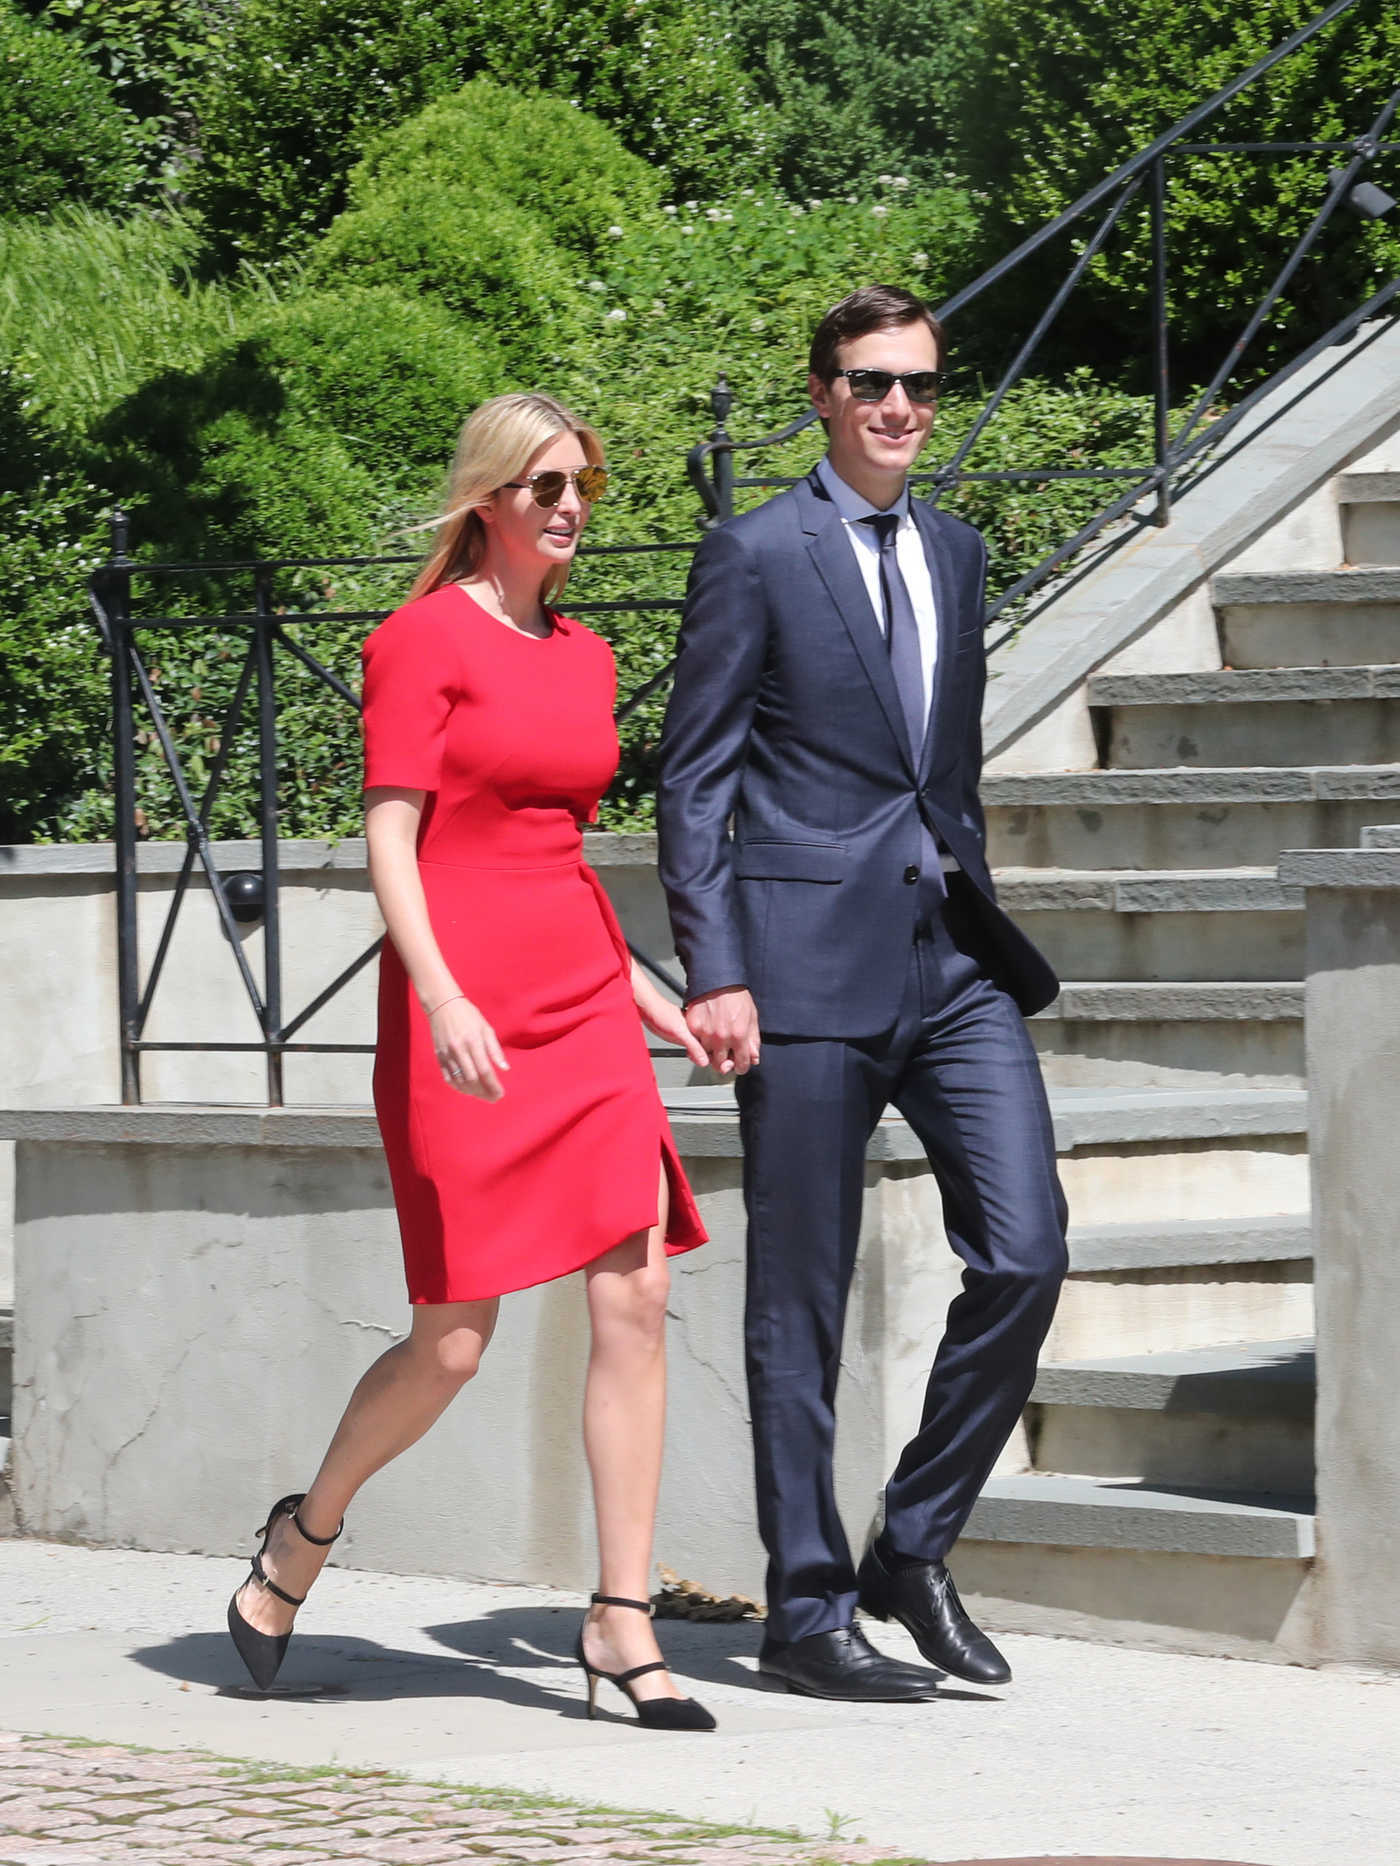 Ivanka Trump and Jared Kushner Head to Synagogue in Washington 06/01/2017